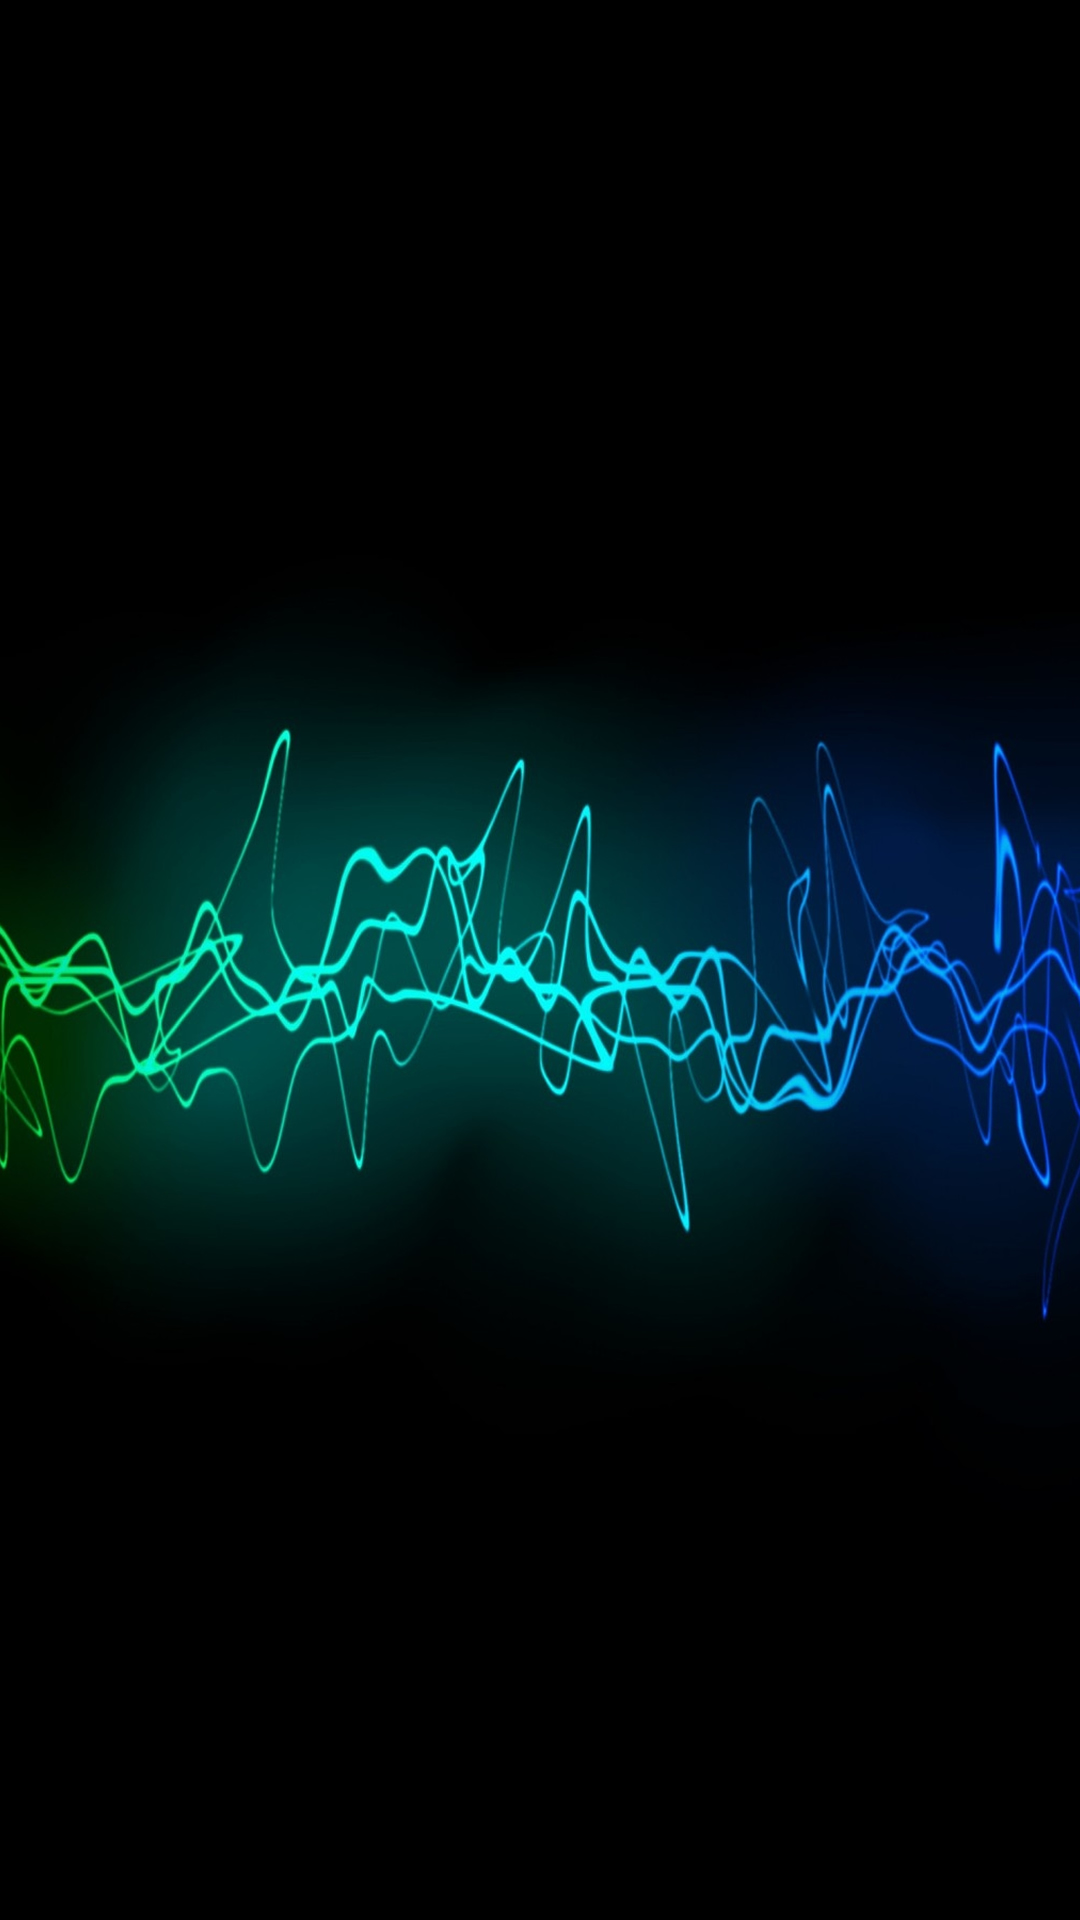 Cool Sound Waves Wallpaper Cool Sound Waves Iphone 6 1080x1920